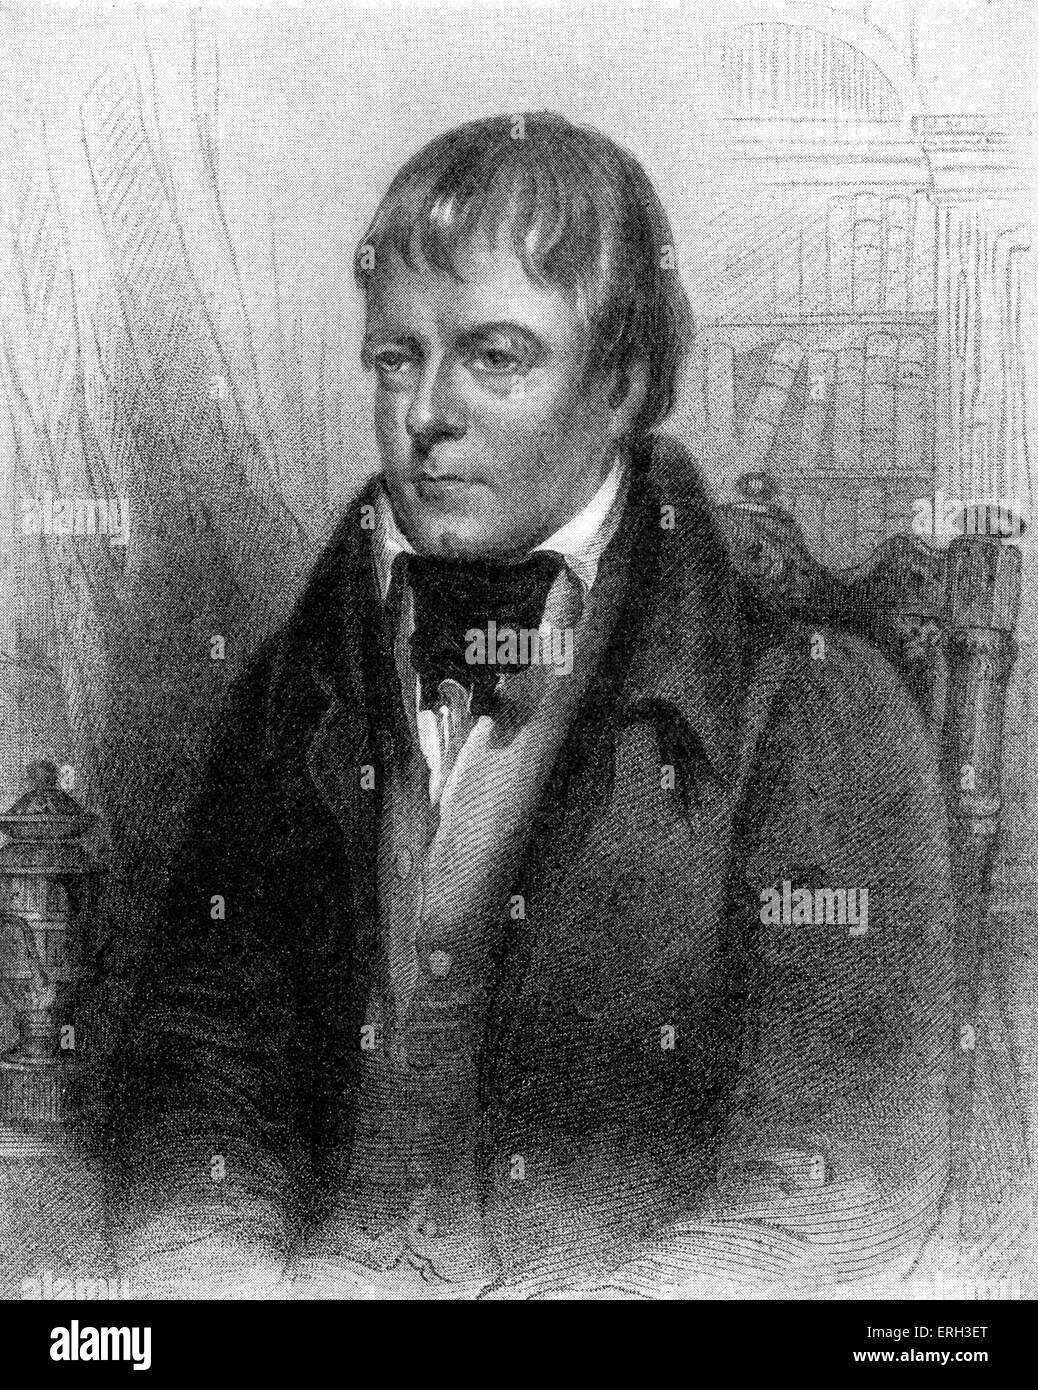 Sir Walter Scott - portrait of the Scottish poet and novelist (15 August 1771 – 21 September 1832) by Sir John Watson - Stock Image